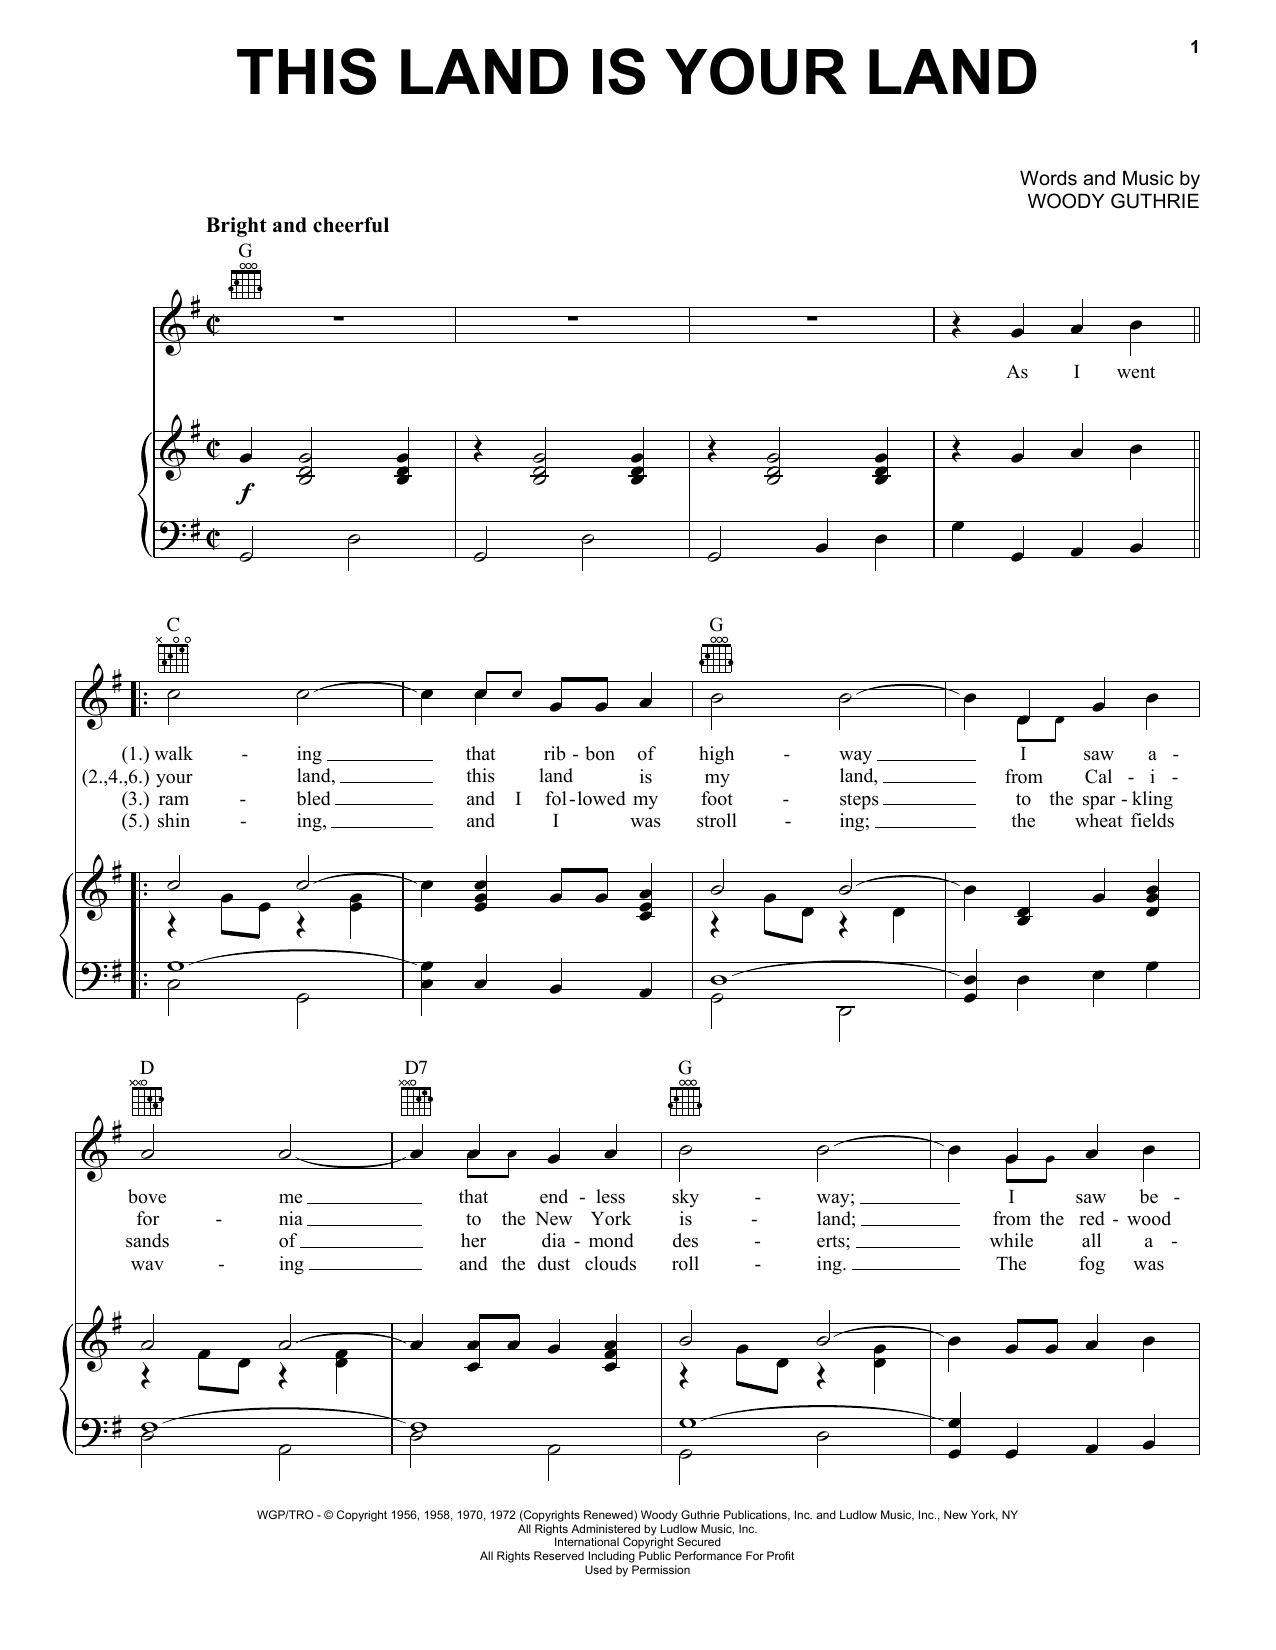 Woody Guthrie This Land Is Your Land sheet music notes and chords - download printable PDF.